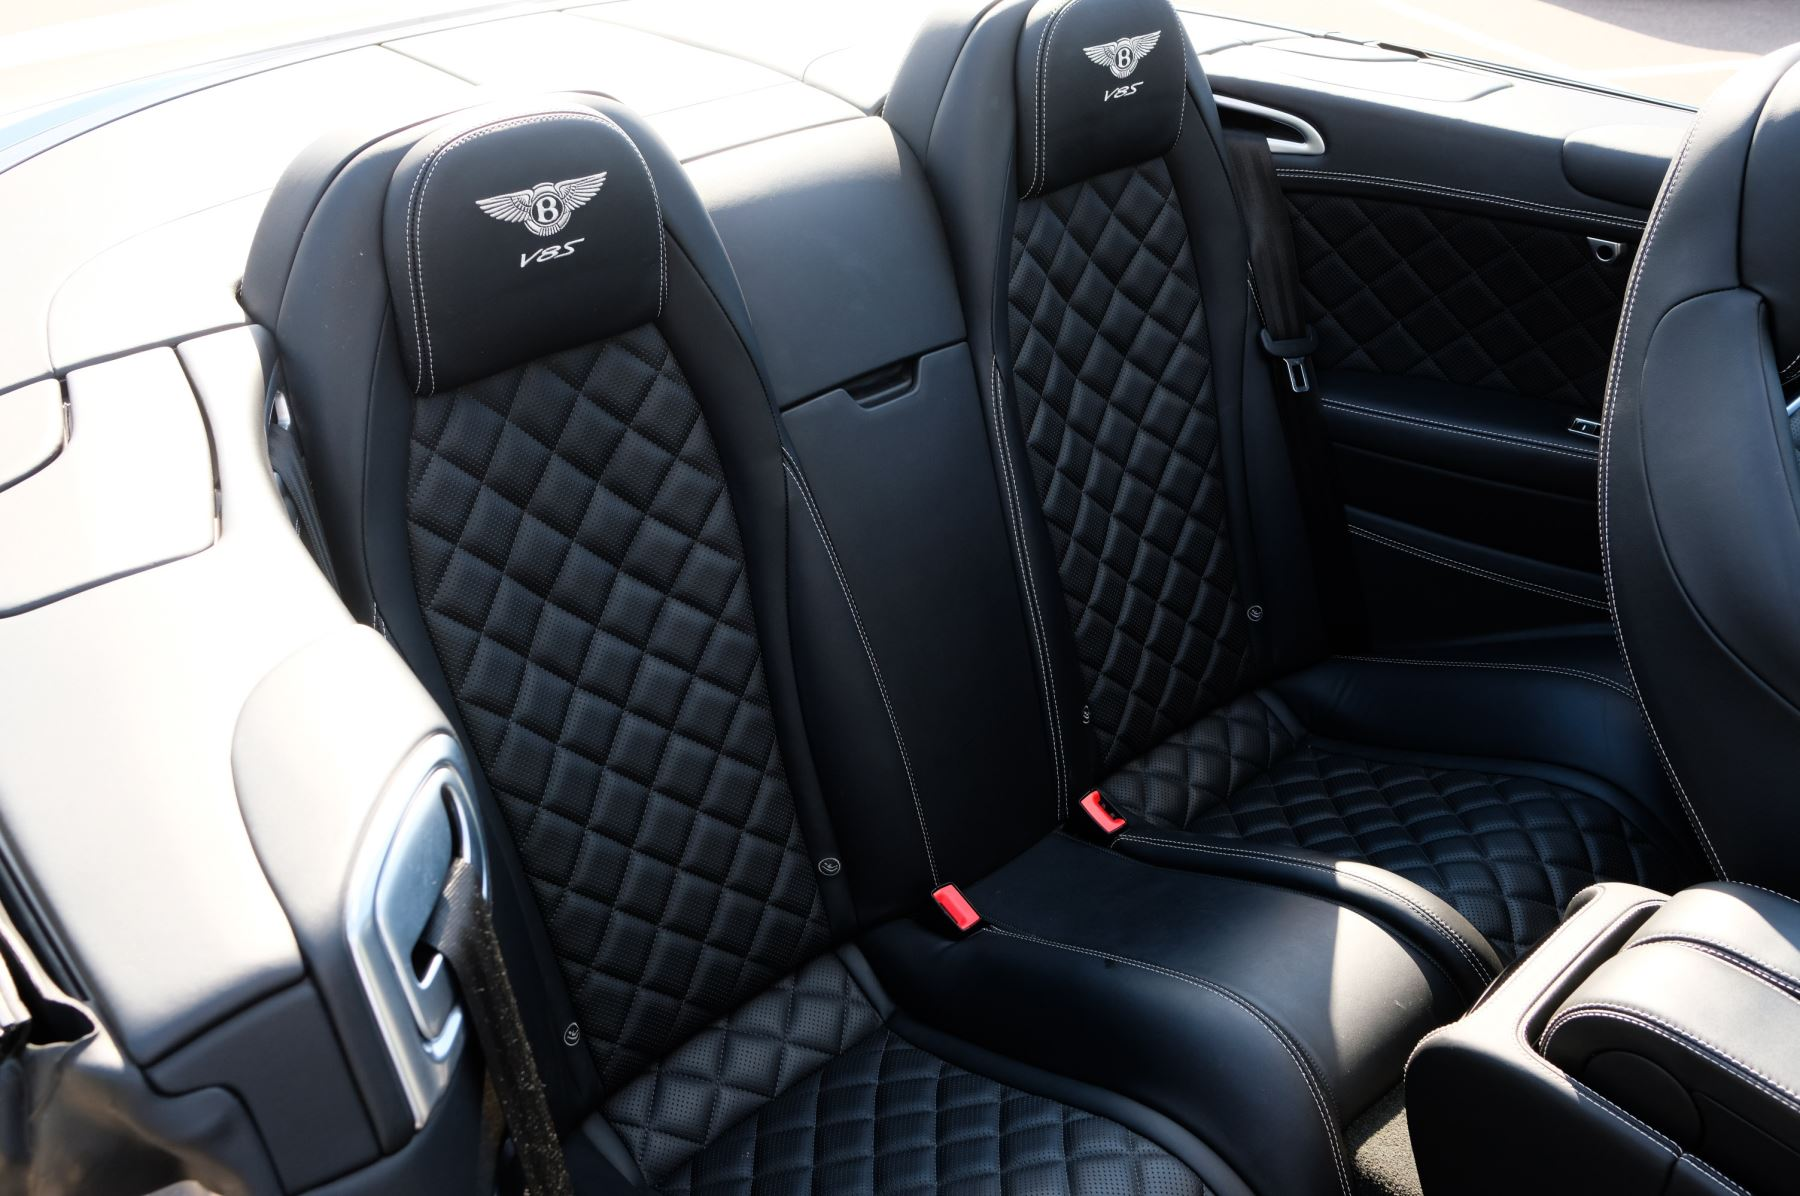 Bentley Continental GTC 4.0 V8 S Mulliner Driving Spec - Ventilated Front Seats with Massage Function image 17